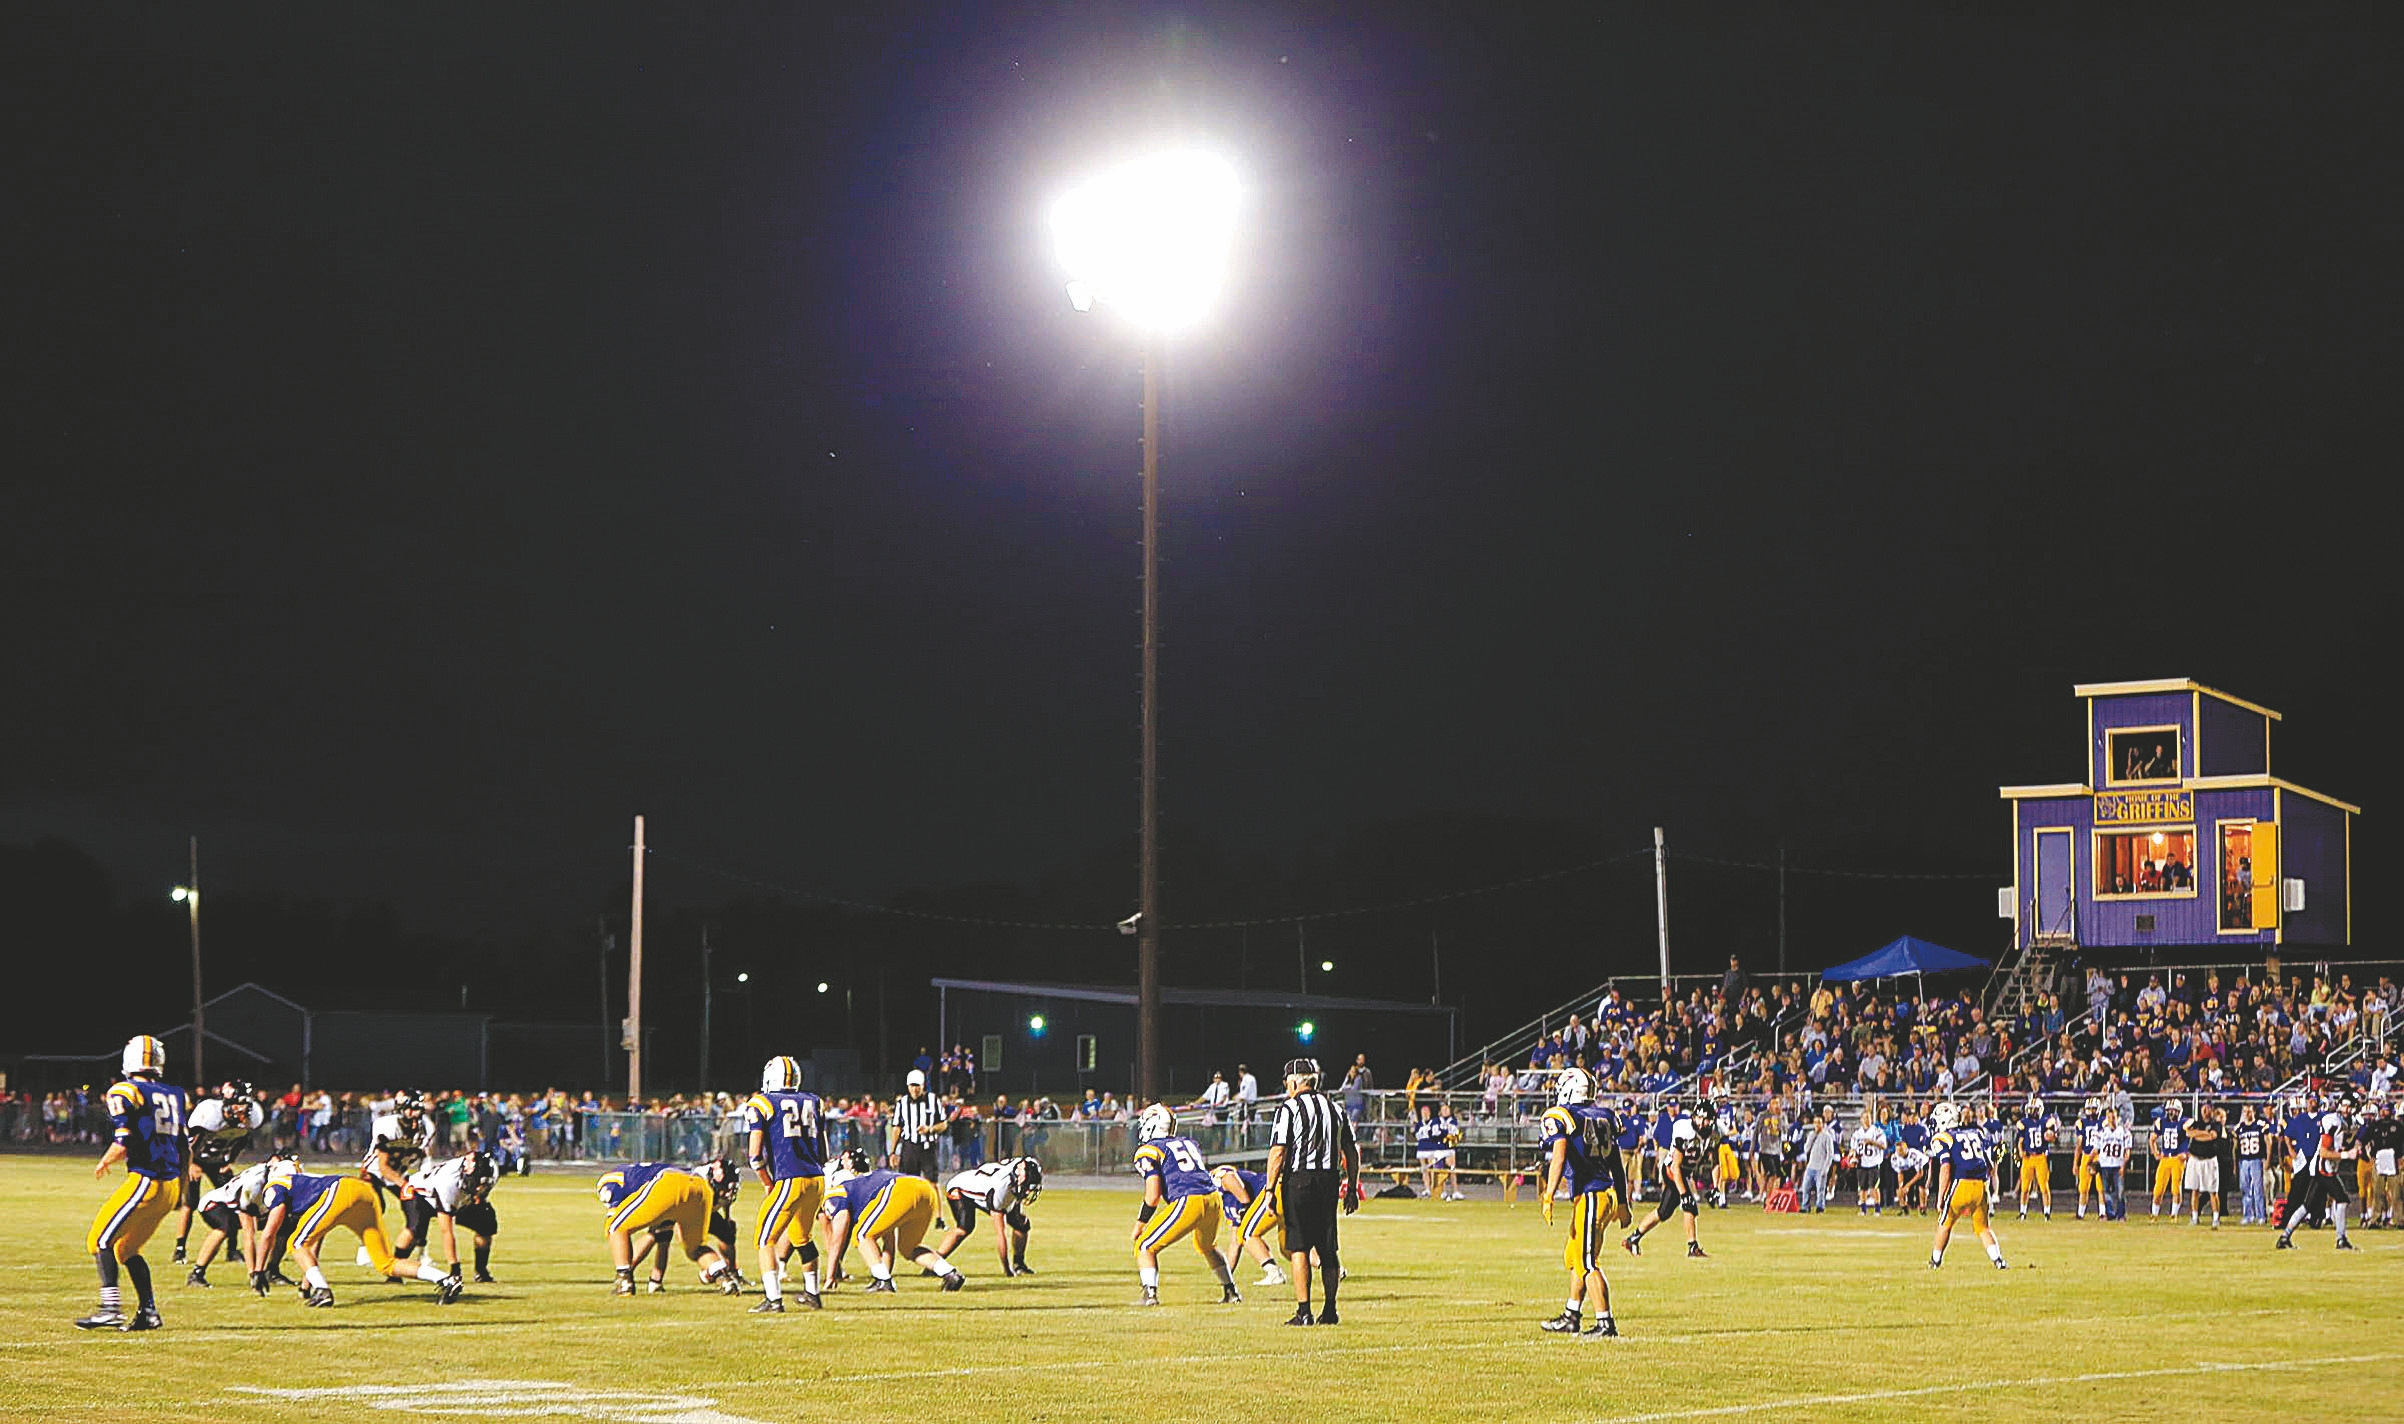 Starpoint, Sweet Home and Williamsville North are among the teams shifting from Saturday afternoon to Friday night games. Springville, shown here, is among the teams that draws well when it plays under the lights at Pop Warner Field home. (Harry Scull Jr./Buffalo News)